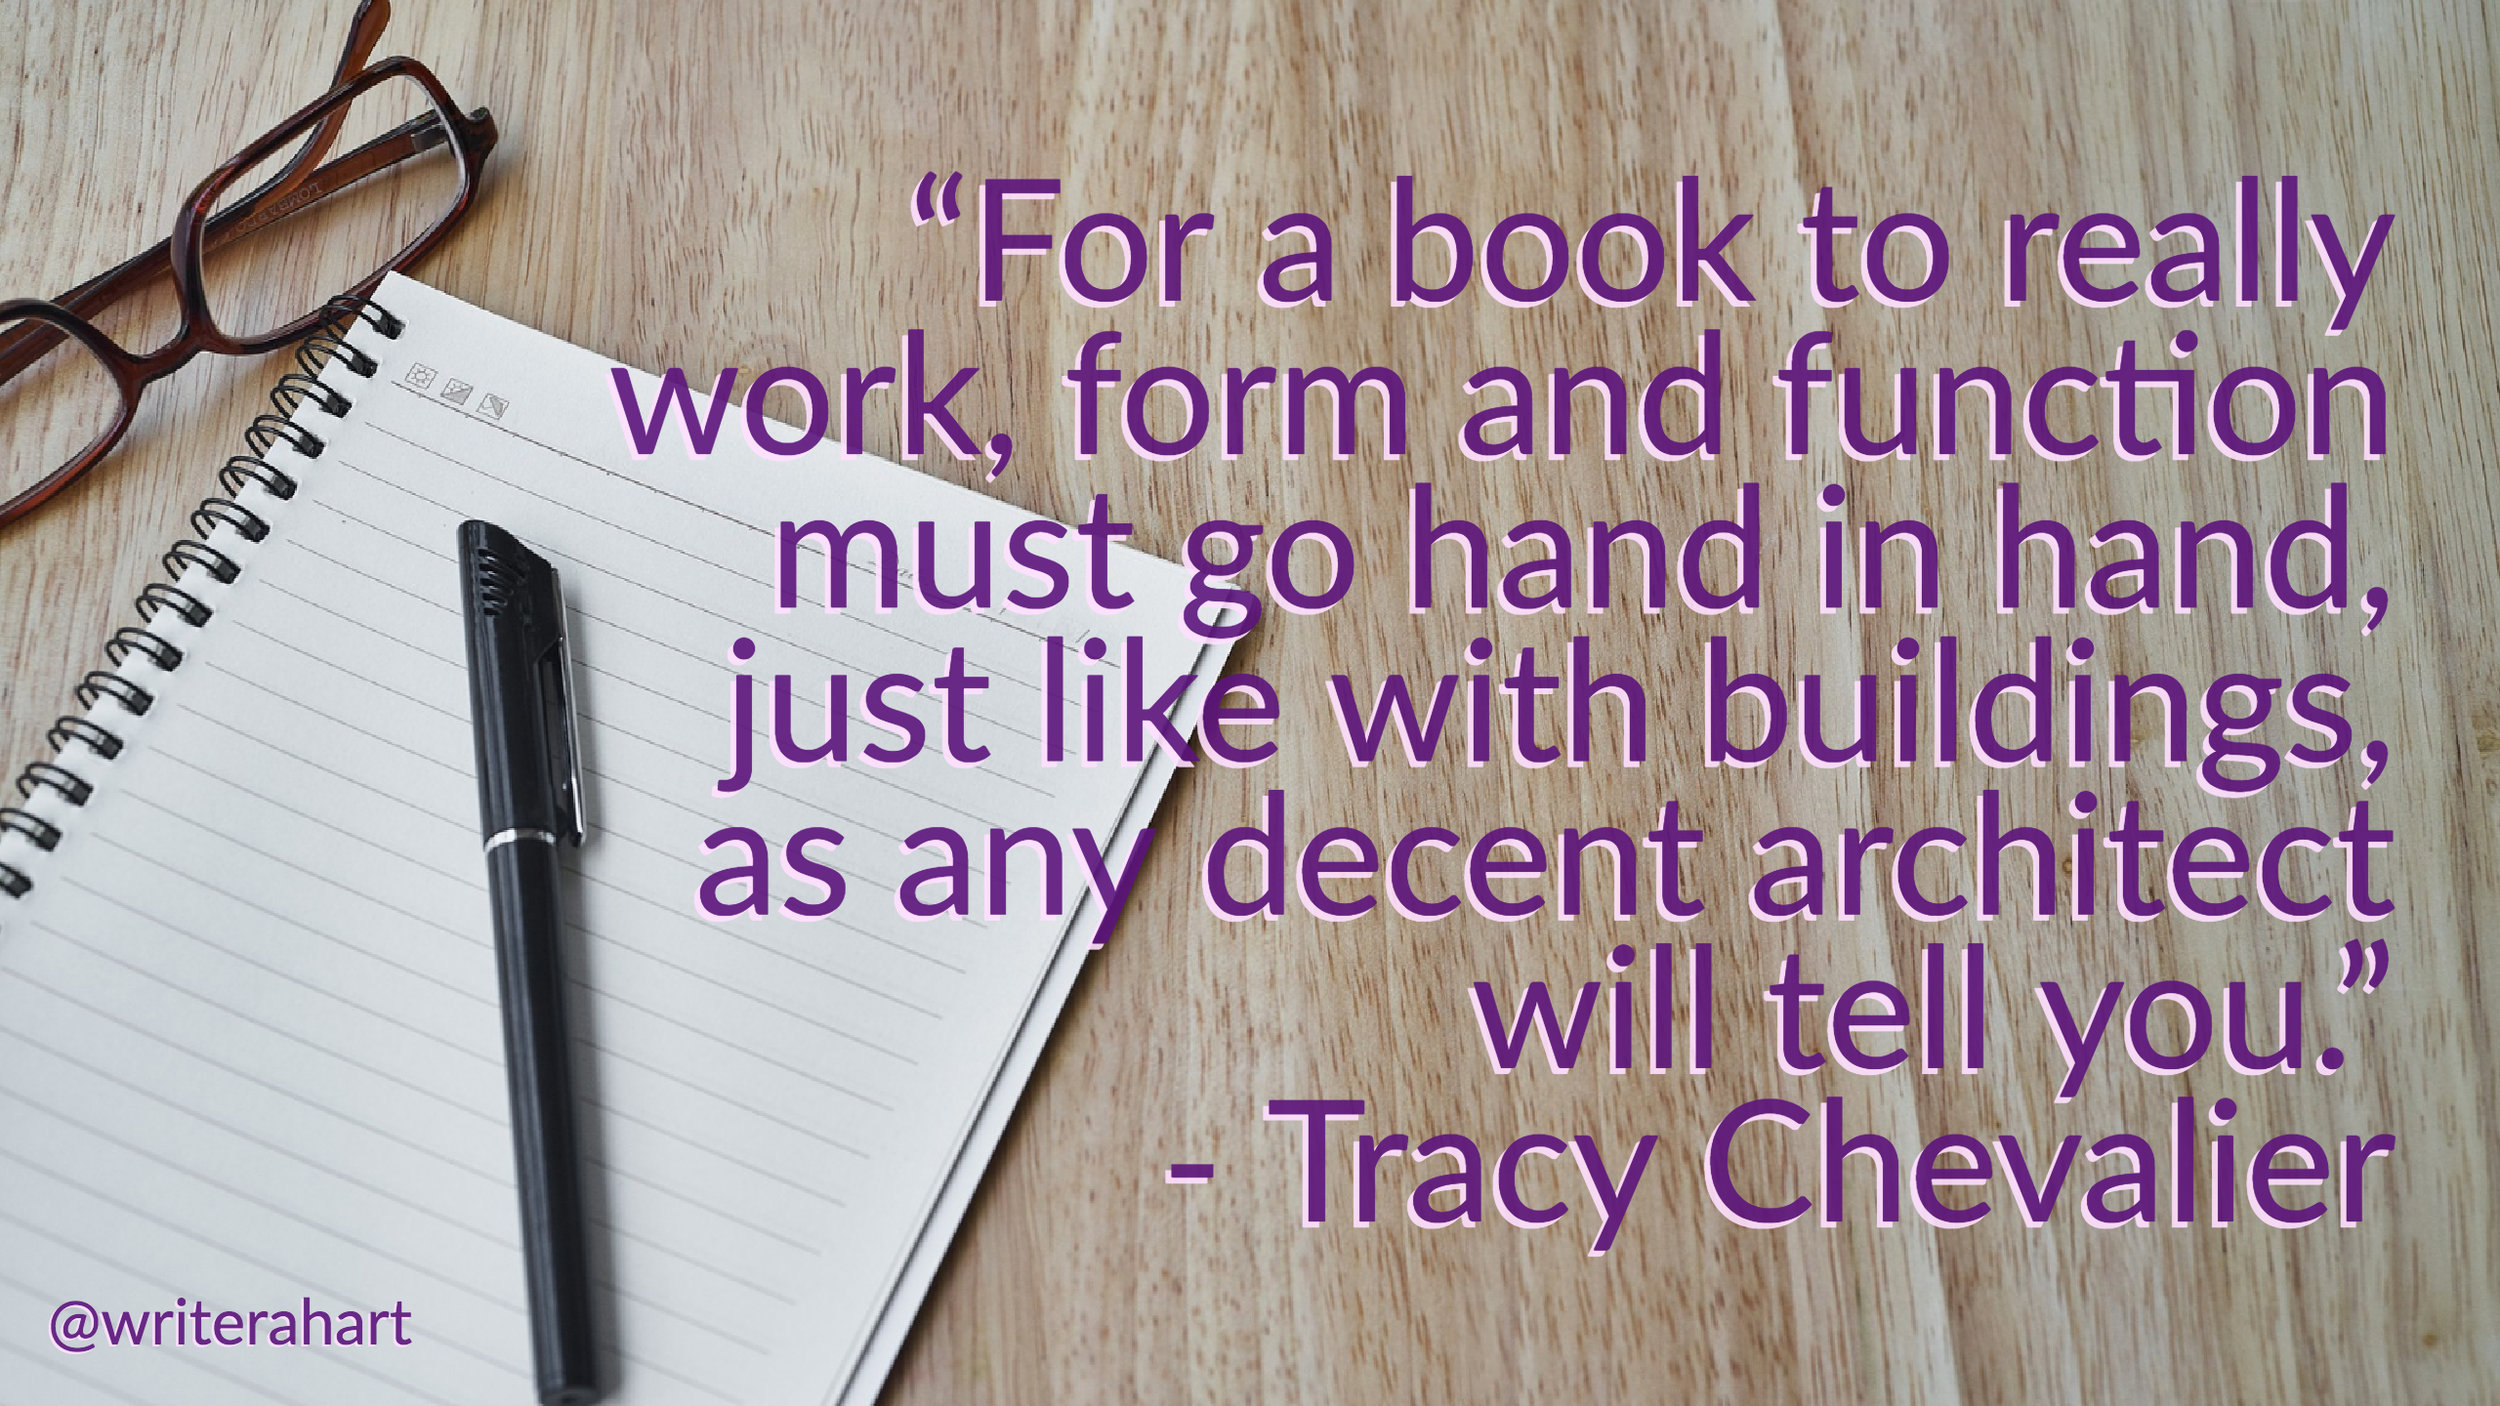 tracy quote .jpg